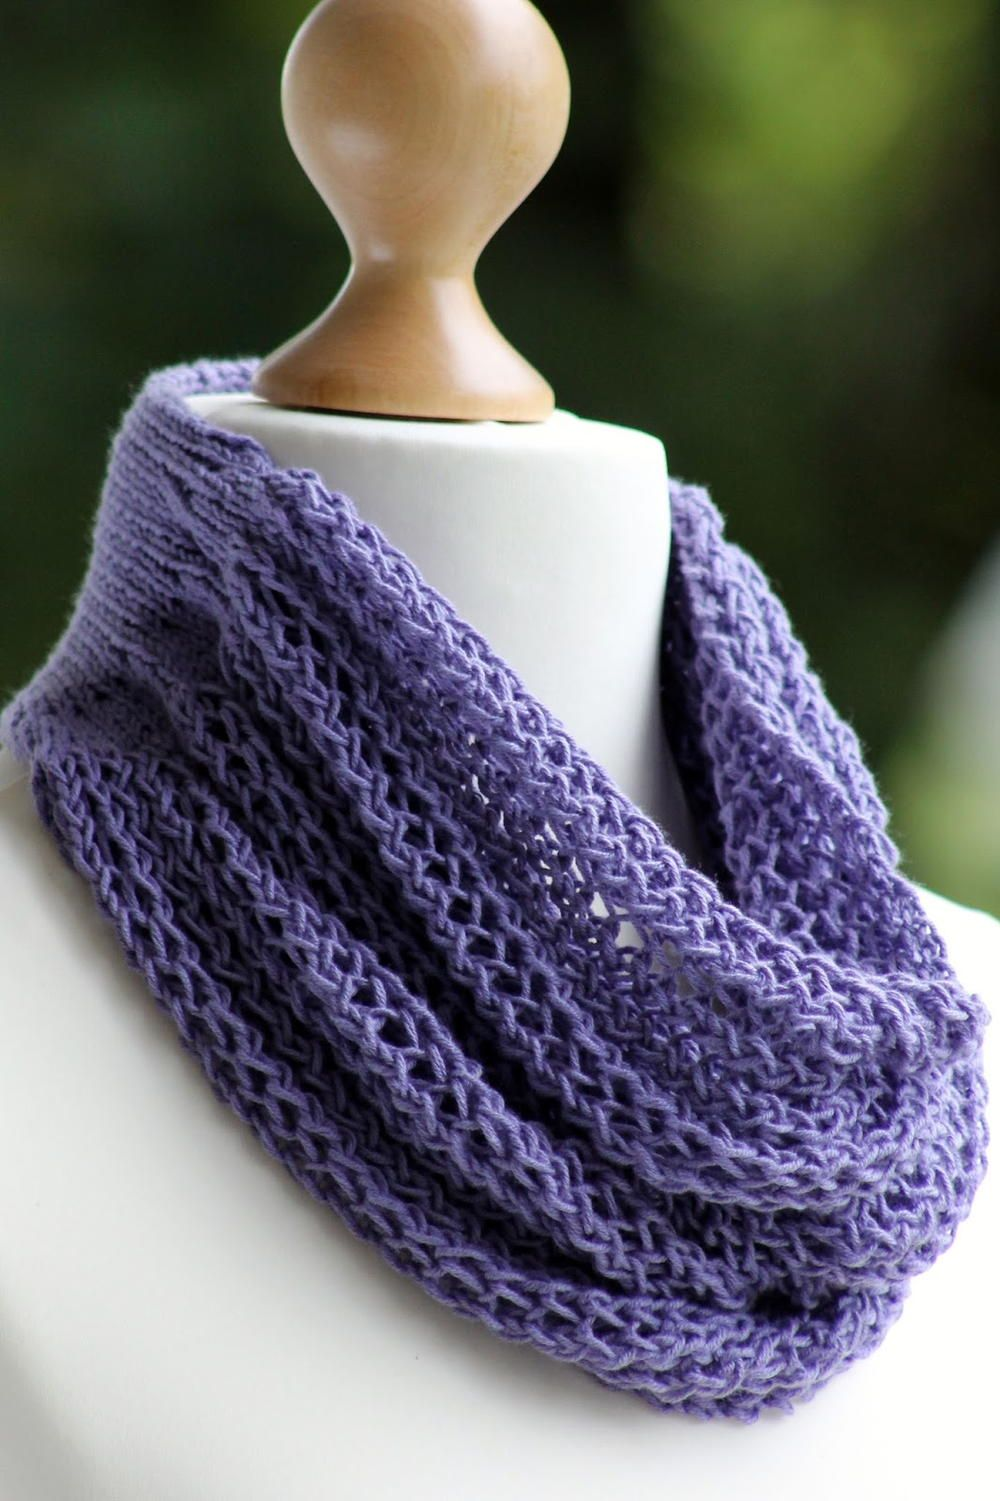 Gorgeous Grape Knit Cowl | Pinterest | Knit cowl, Absolutely ...